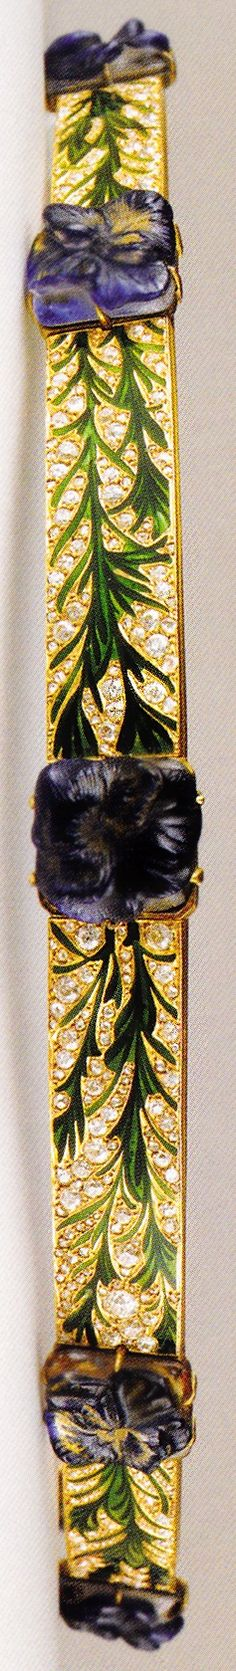 An Art Nouveau 'Pansies' bandeau, by René Lalique, 1904-05. Composed of gold, steel, enamel and moulded glass cabochons. Using glass cabochons and a sleek profile, Lalique's later bandeaus represented a radical departure from his flamboyant hair ornaments of around 1900. Source: Artistic Luxury - Fabergé Tiffany Lalique #Lalique #ArtNouveau #bandeau